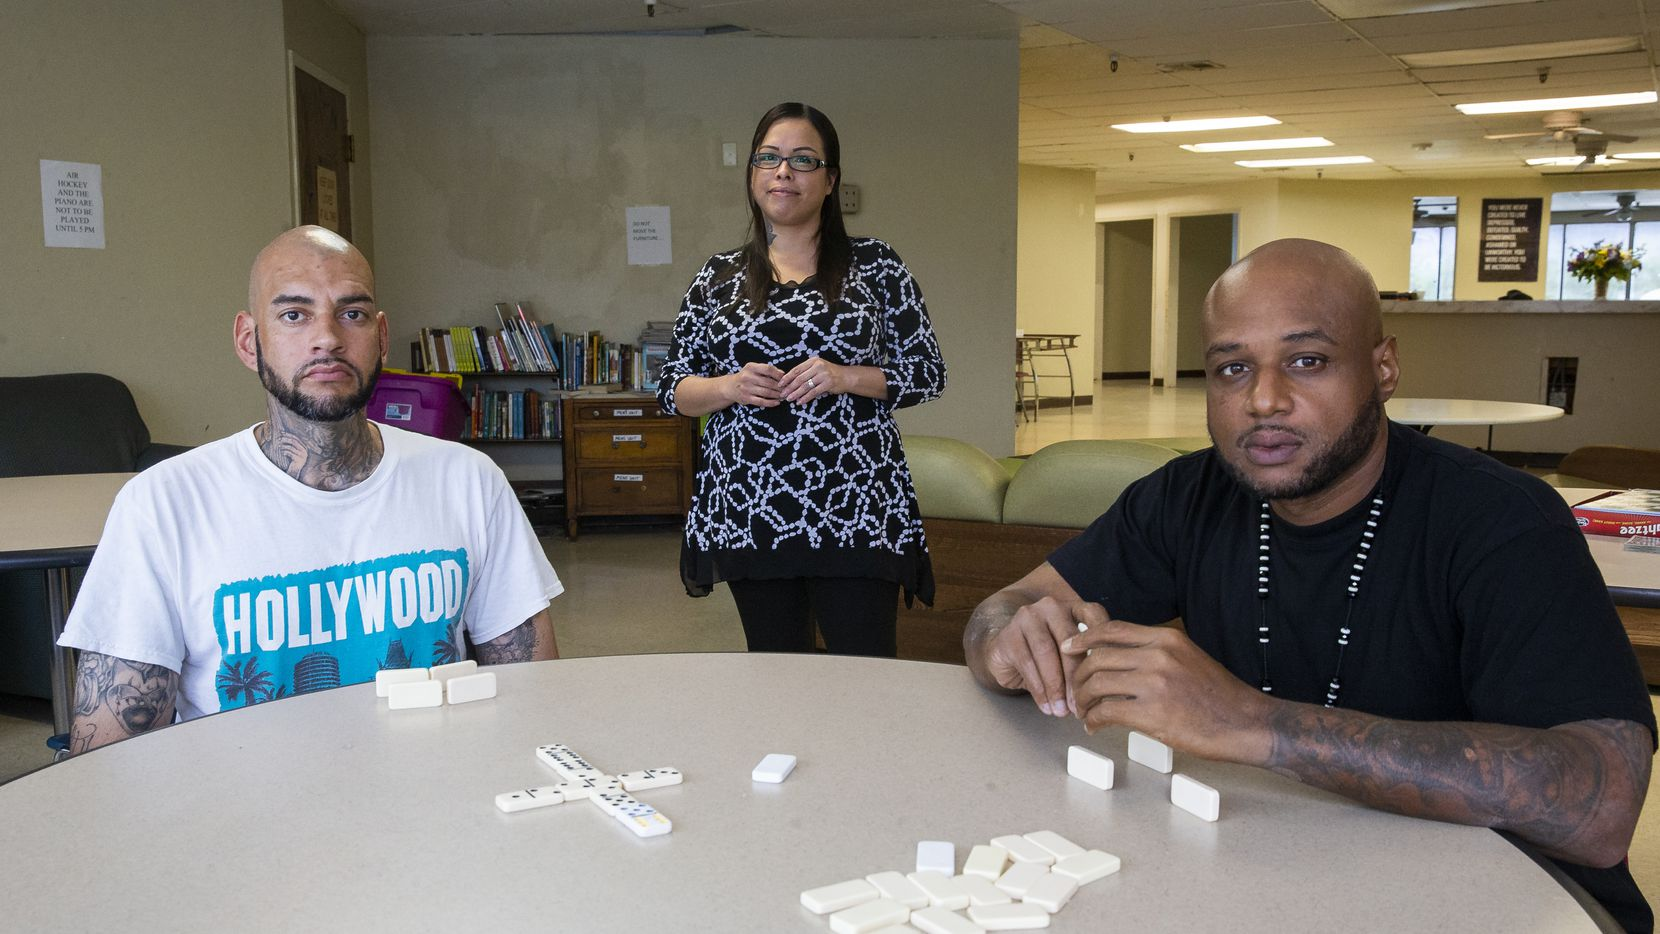 Samantha Anderson, a peer recovery specialist at Homeward Bound, with program members Rolando A. (left) and Donald C. at the nonprofit's treatment center. Rolando and Donald are among those who have found help in the residential treatment program.